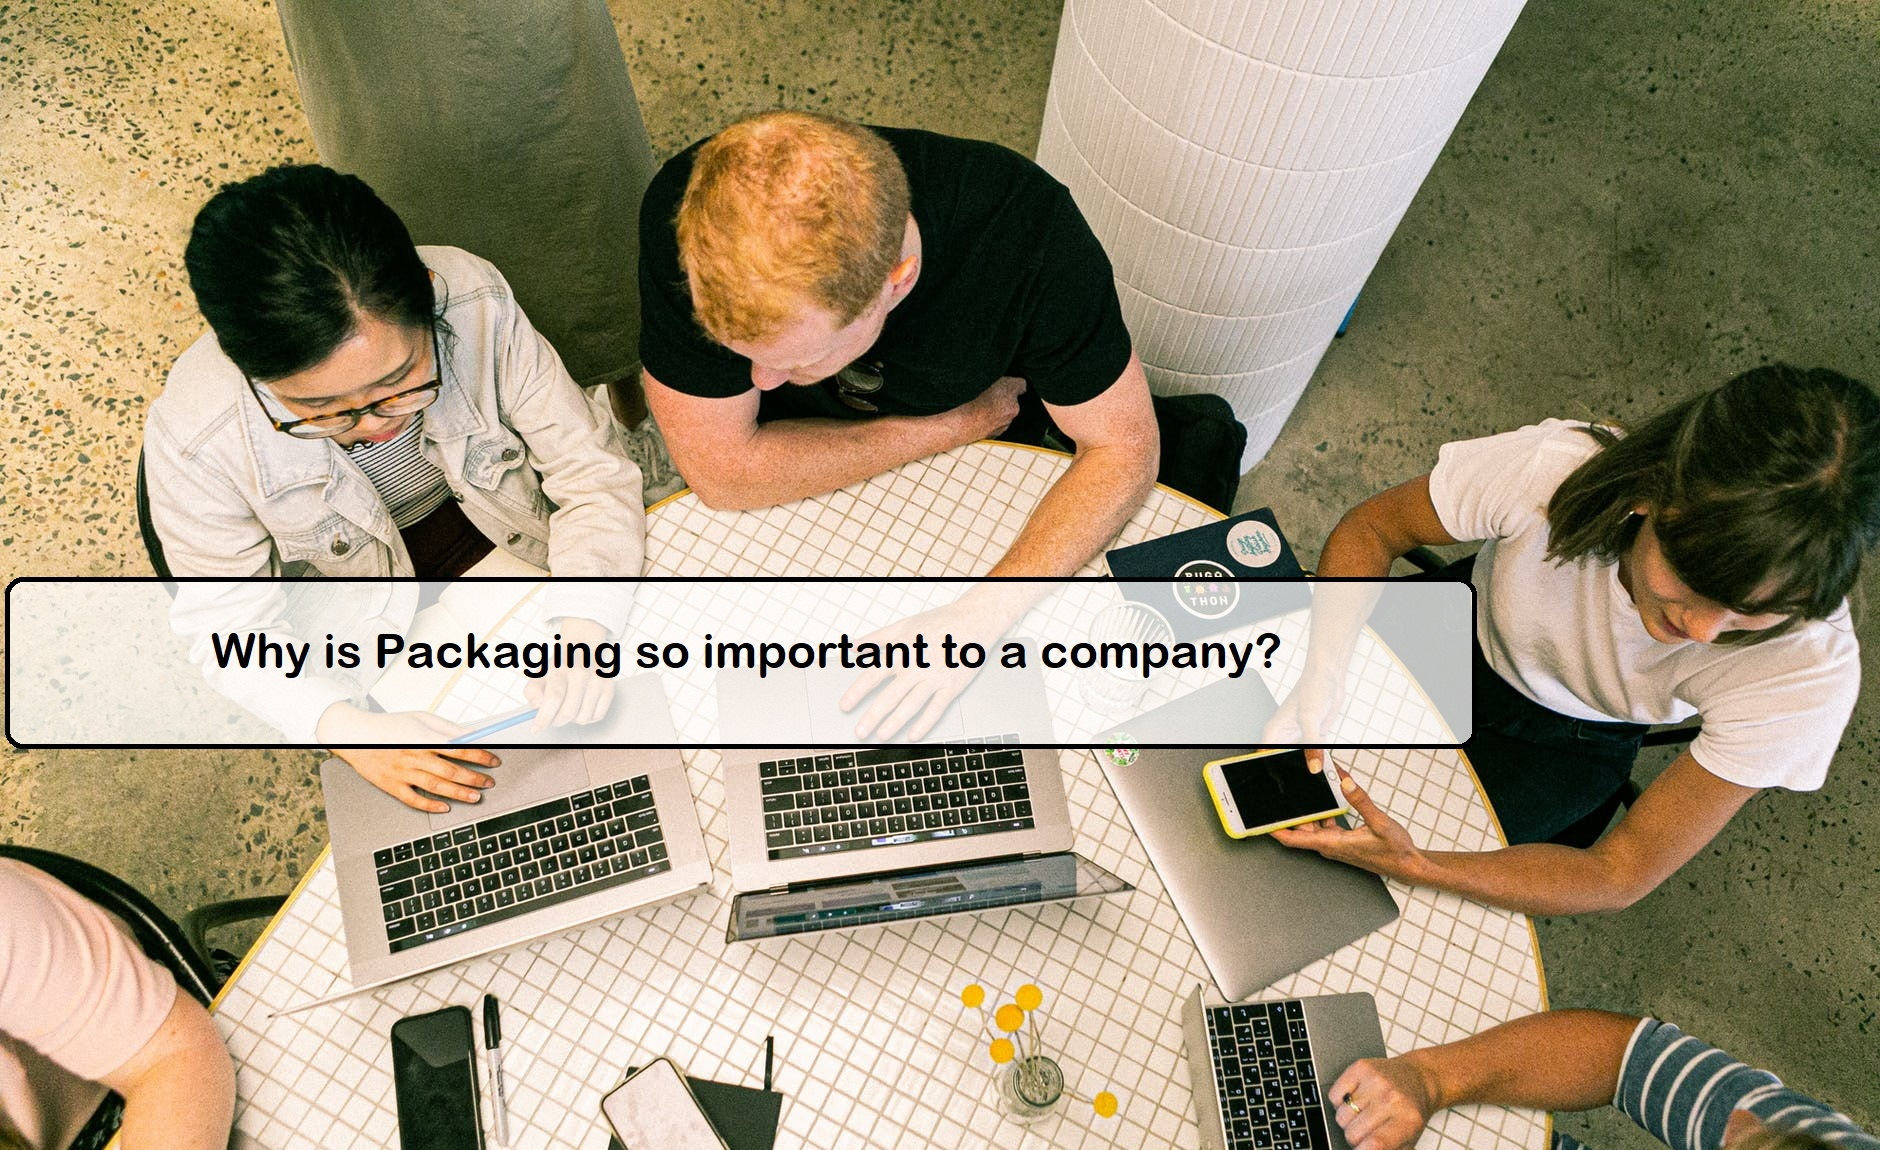 Why is Packaging so important to a company?